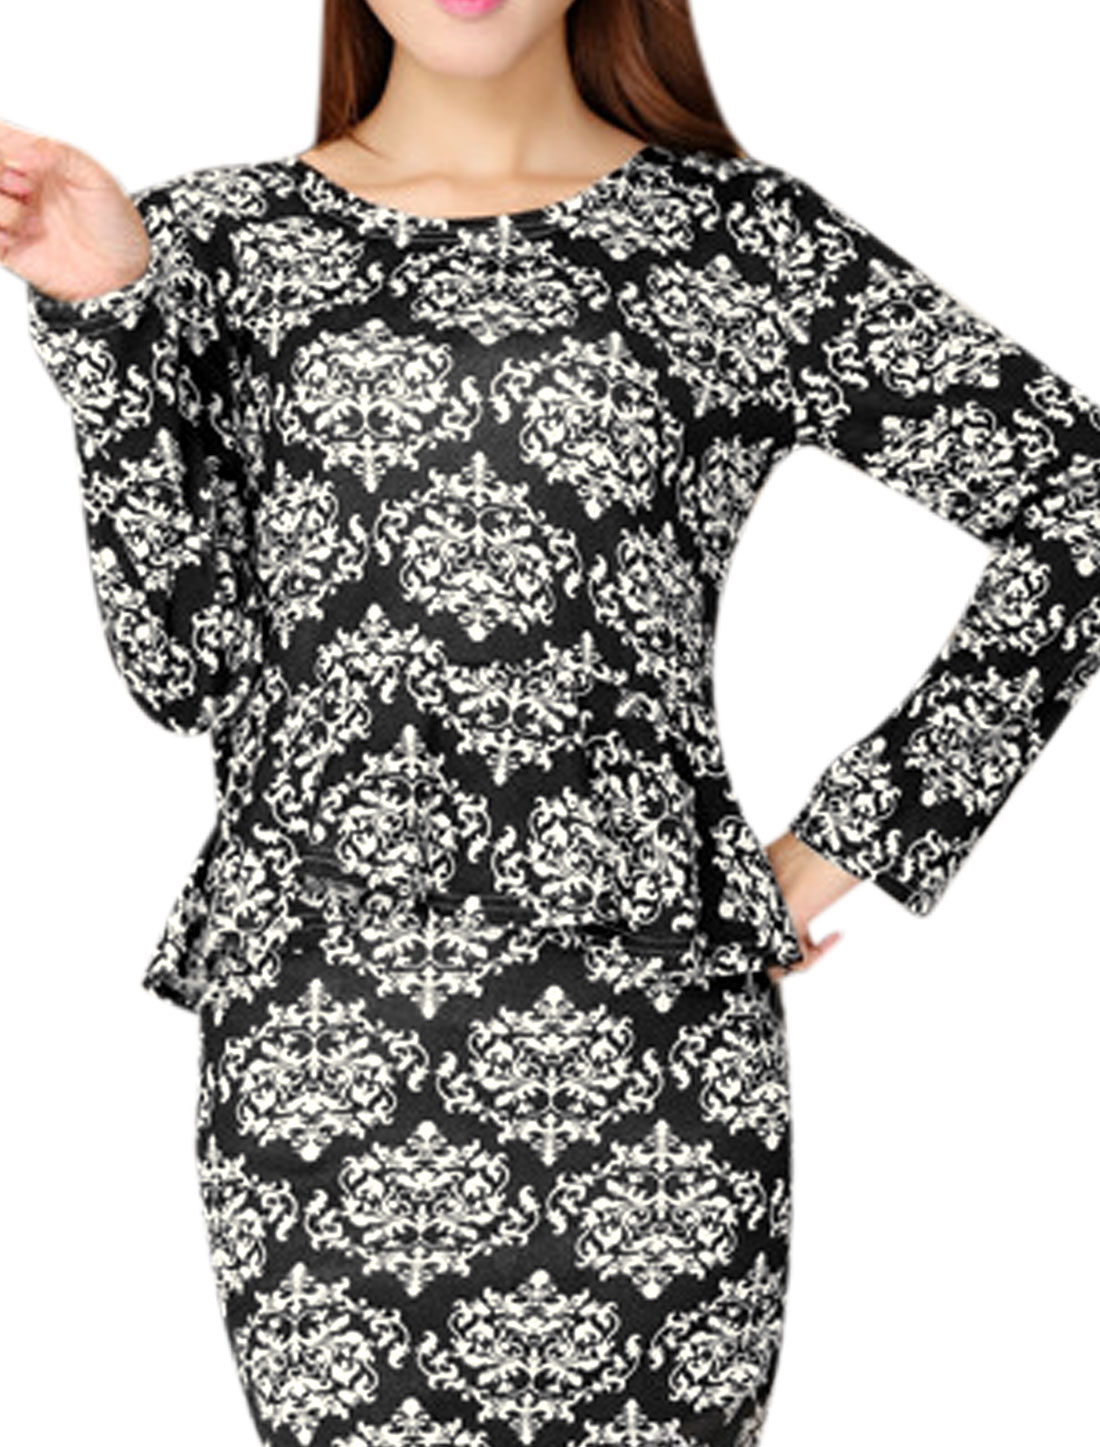 Lady Jacquard Pattern Round Neck Long Sleeve Peplum Top White Black XS